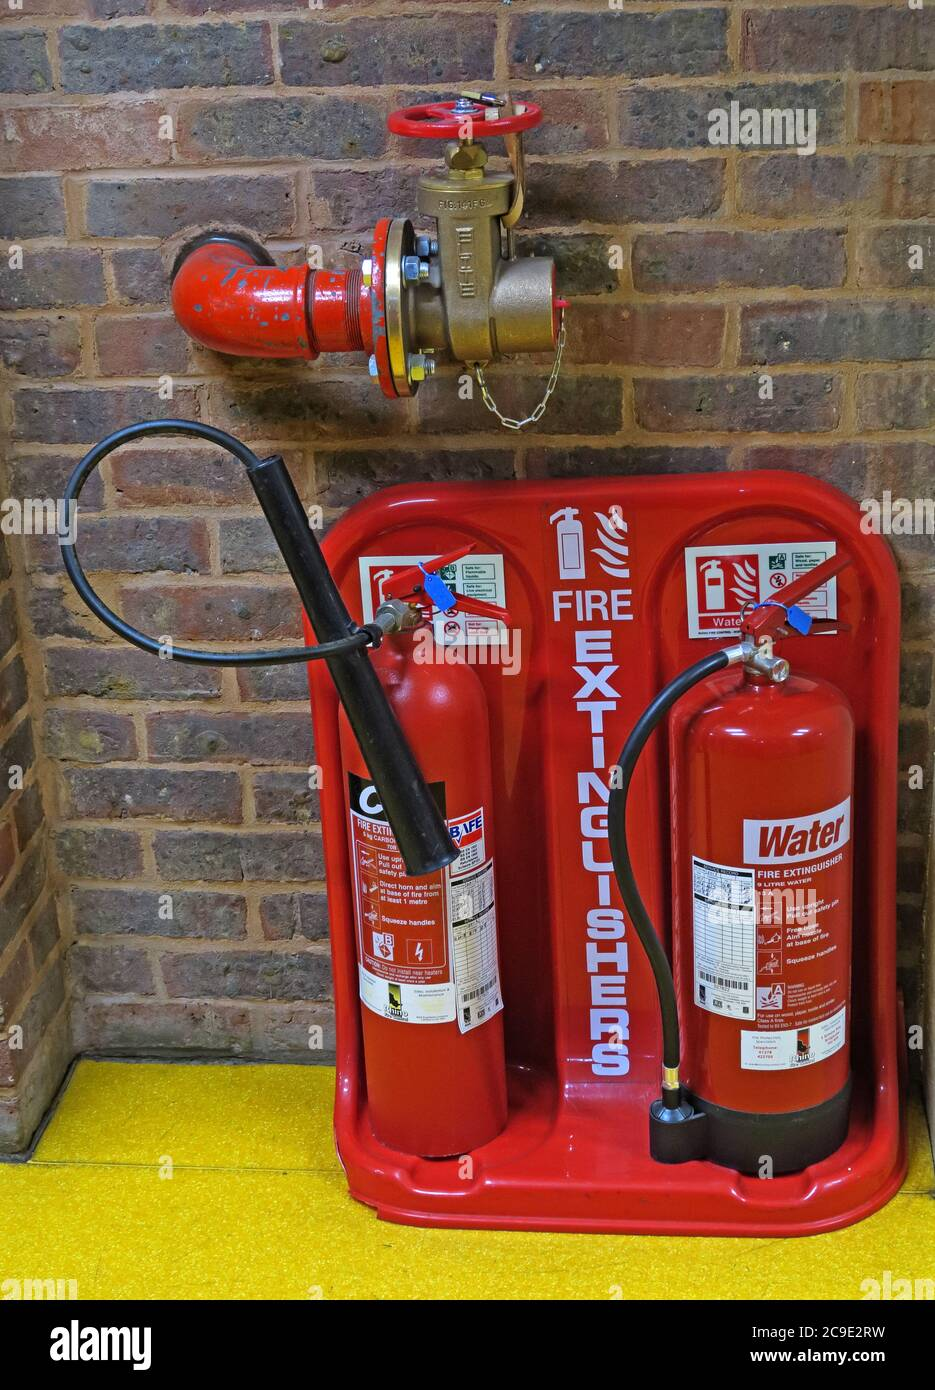 Fire hydrant tap and Fire Extinguishers station, in a public building,England,UK - water Stock Photo